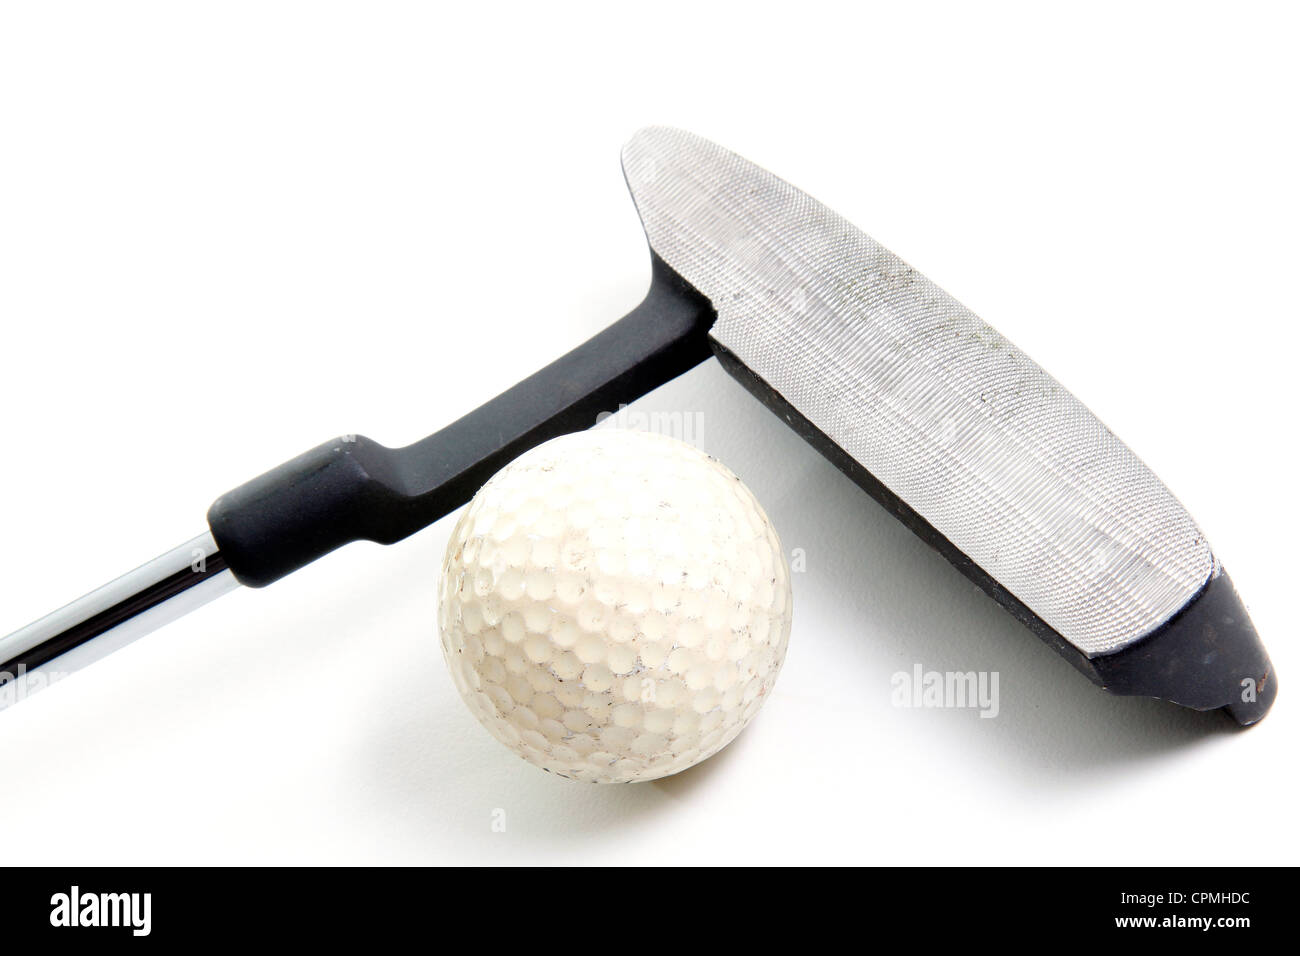 putter and golf ball on white background - Stock Image